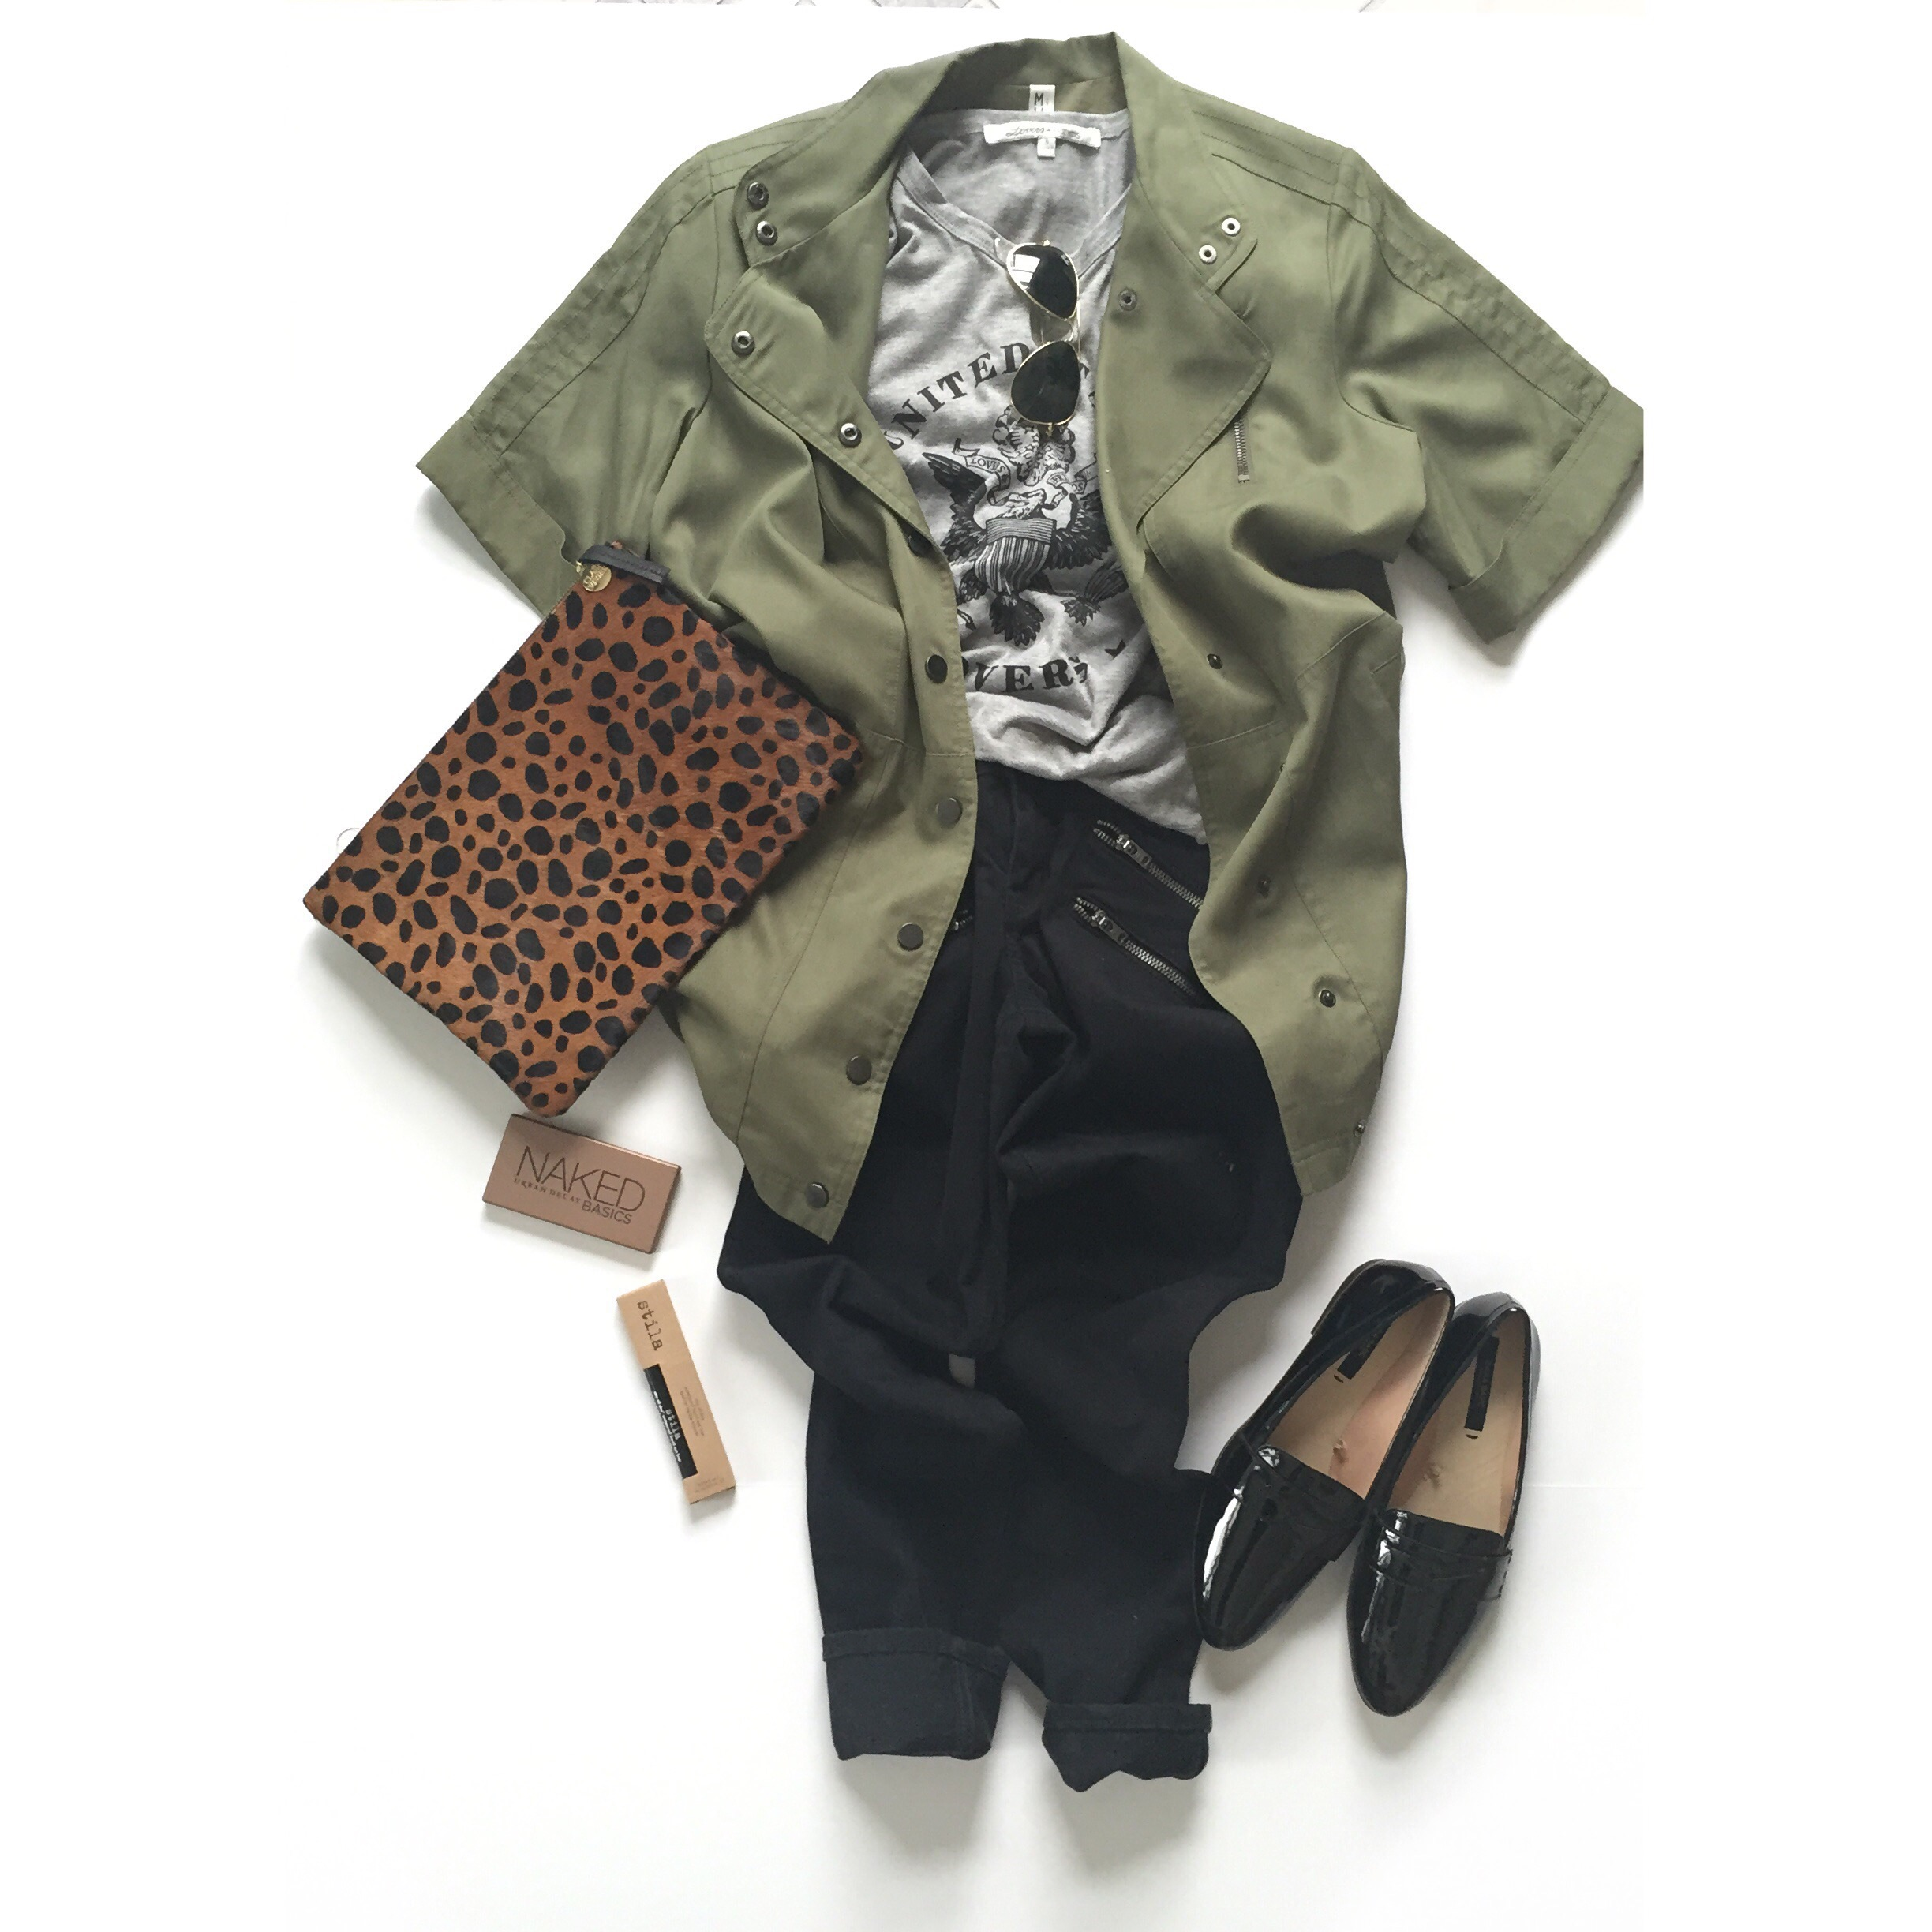 What I Wore - Lovers&Friends tee, Nordstrom jacket, Clare Vivier clutch, Zara flats